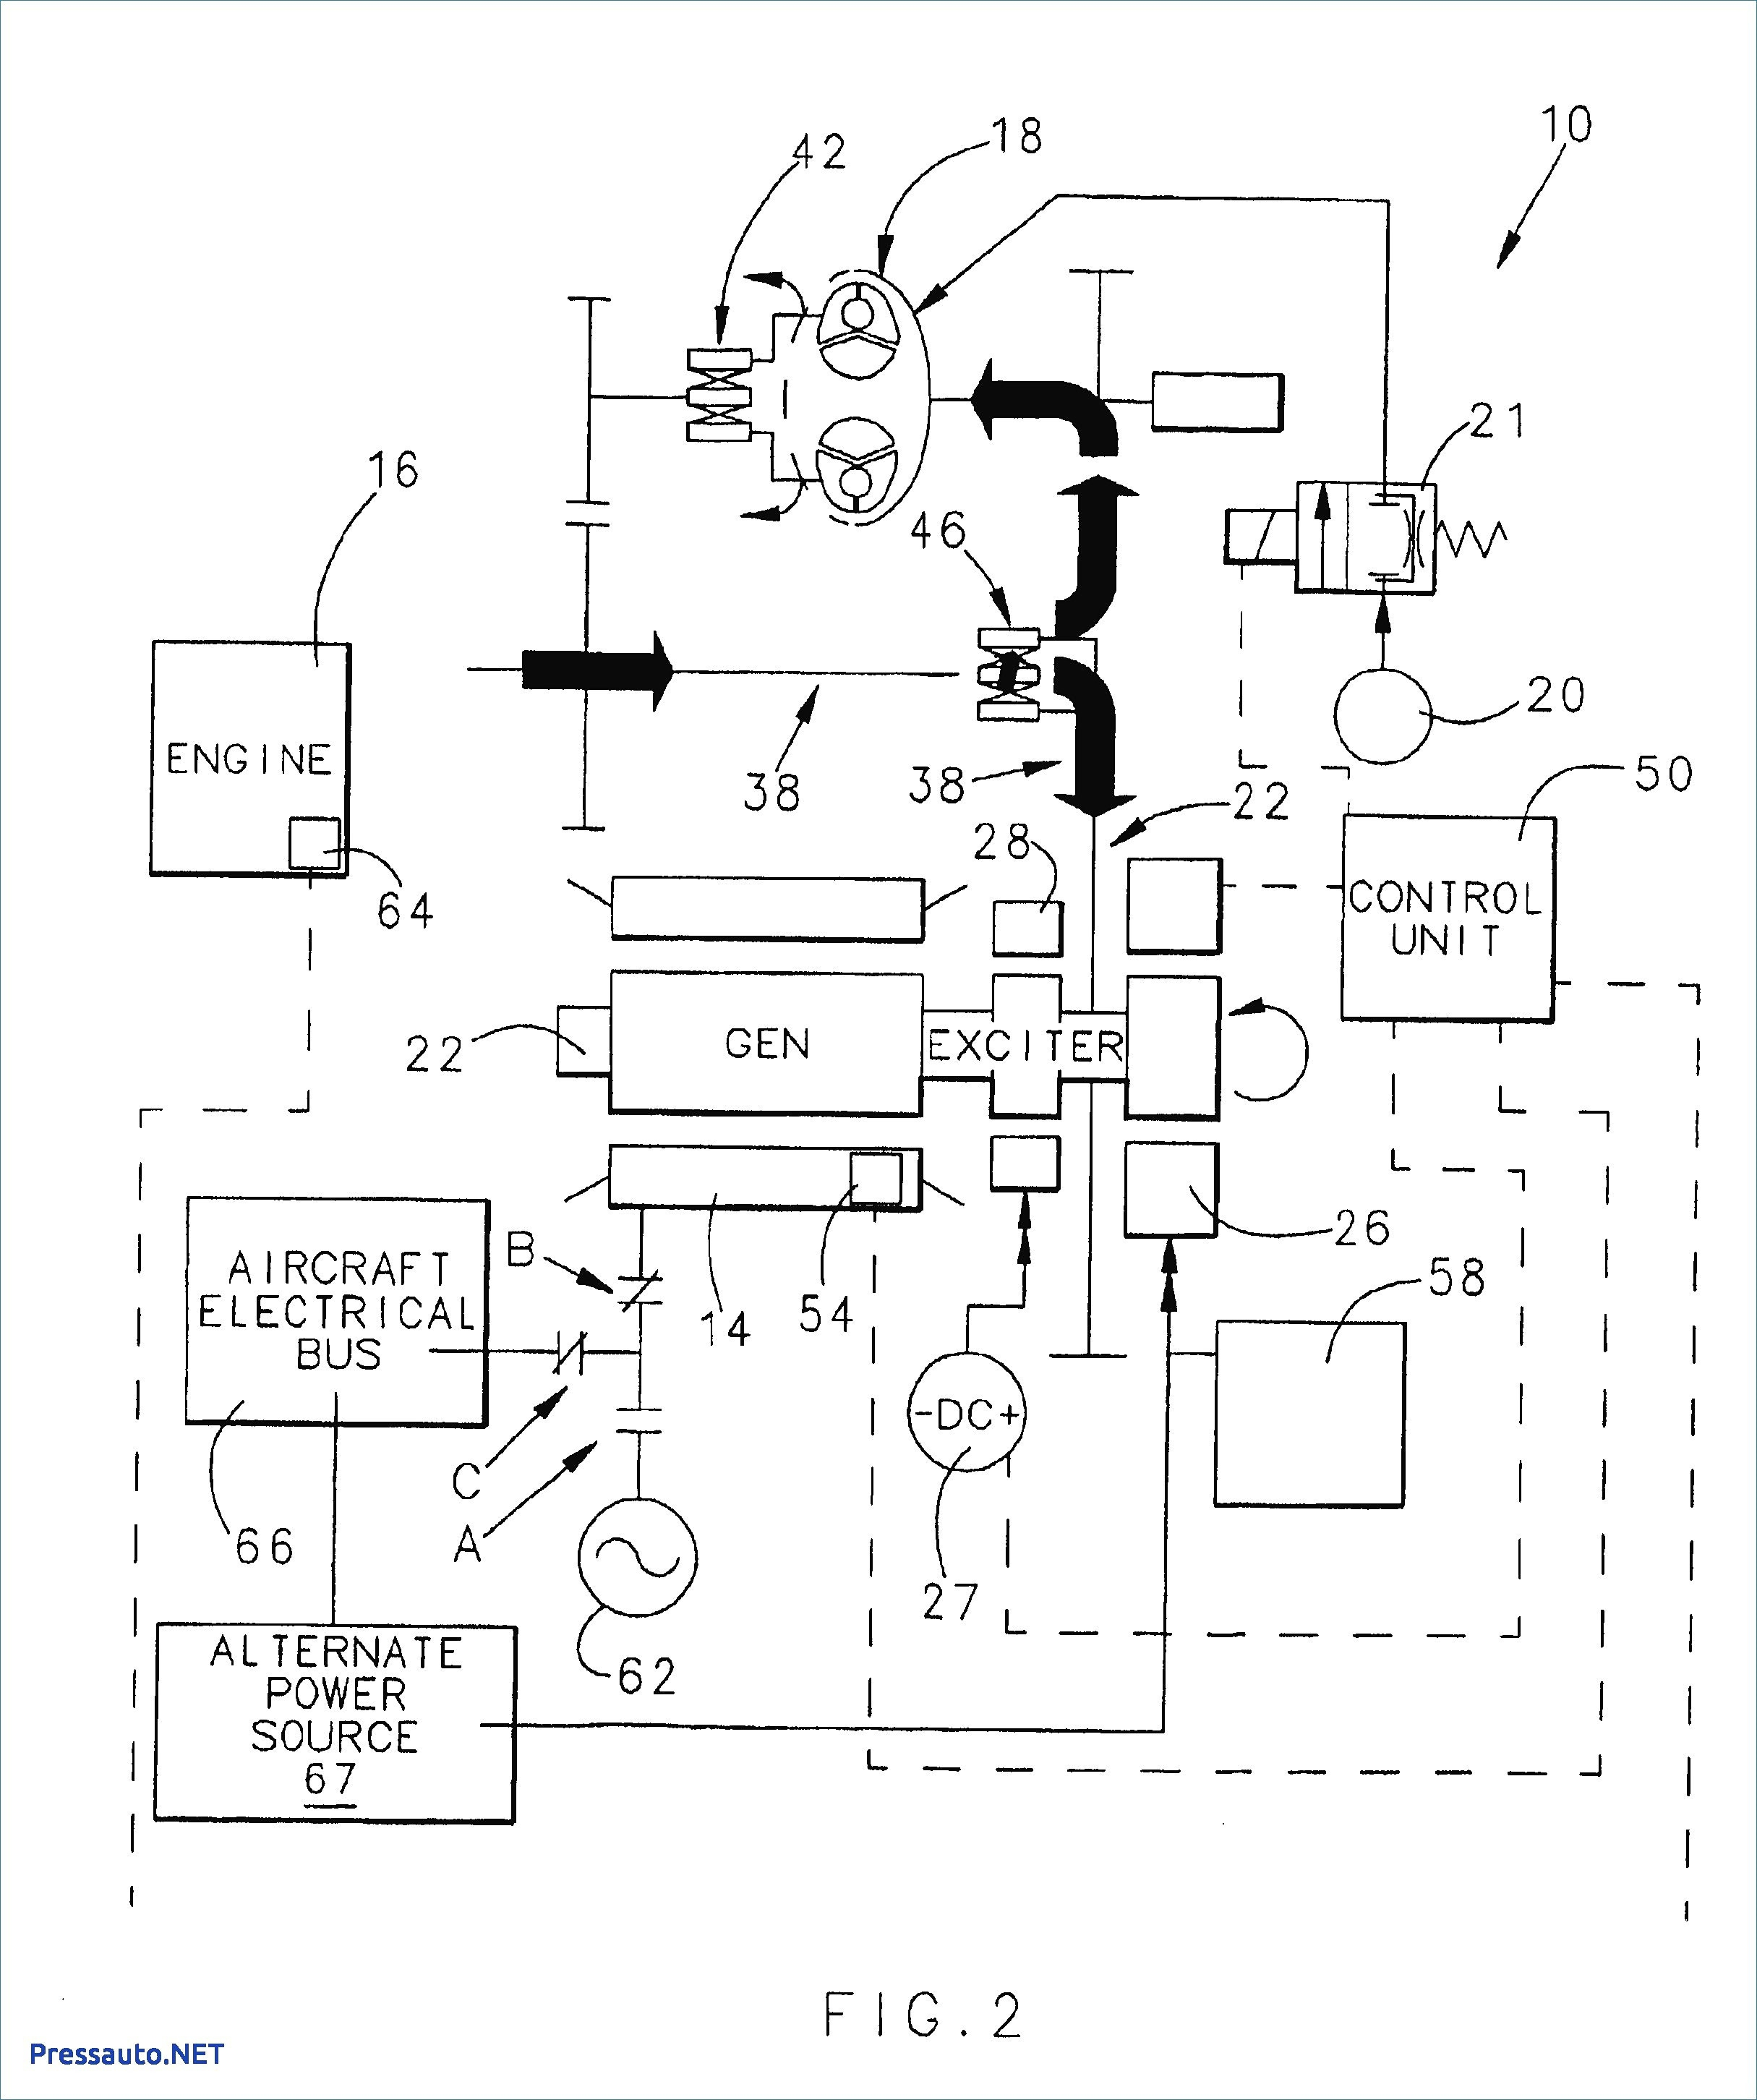 delco 10si alternator wiring diagram delco remy alternator wiring diagram ac delco 4 wire alternator wiring diagram | free wiring ... #13